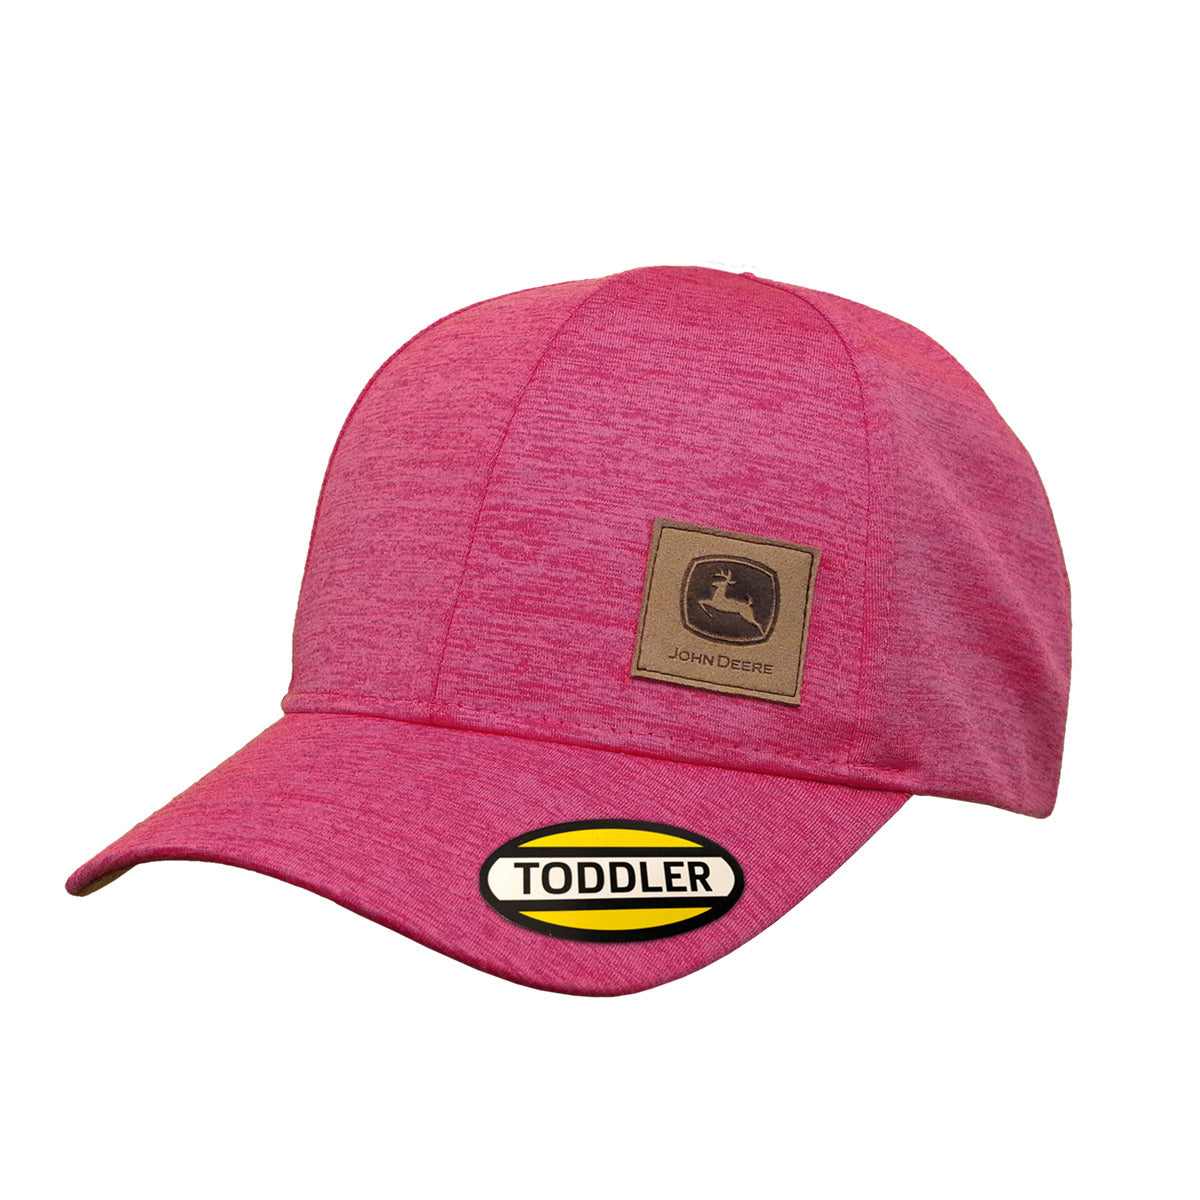 John Deere Pink Toddler Hat/Cap with Suede patch logo - LP71417